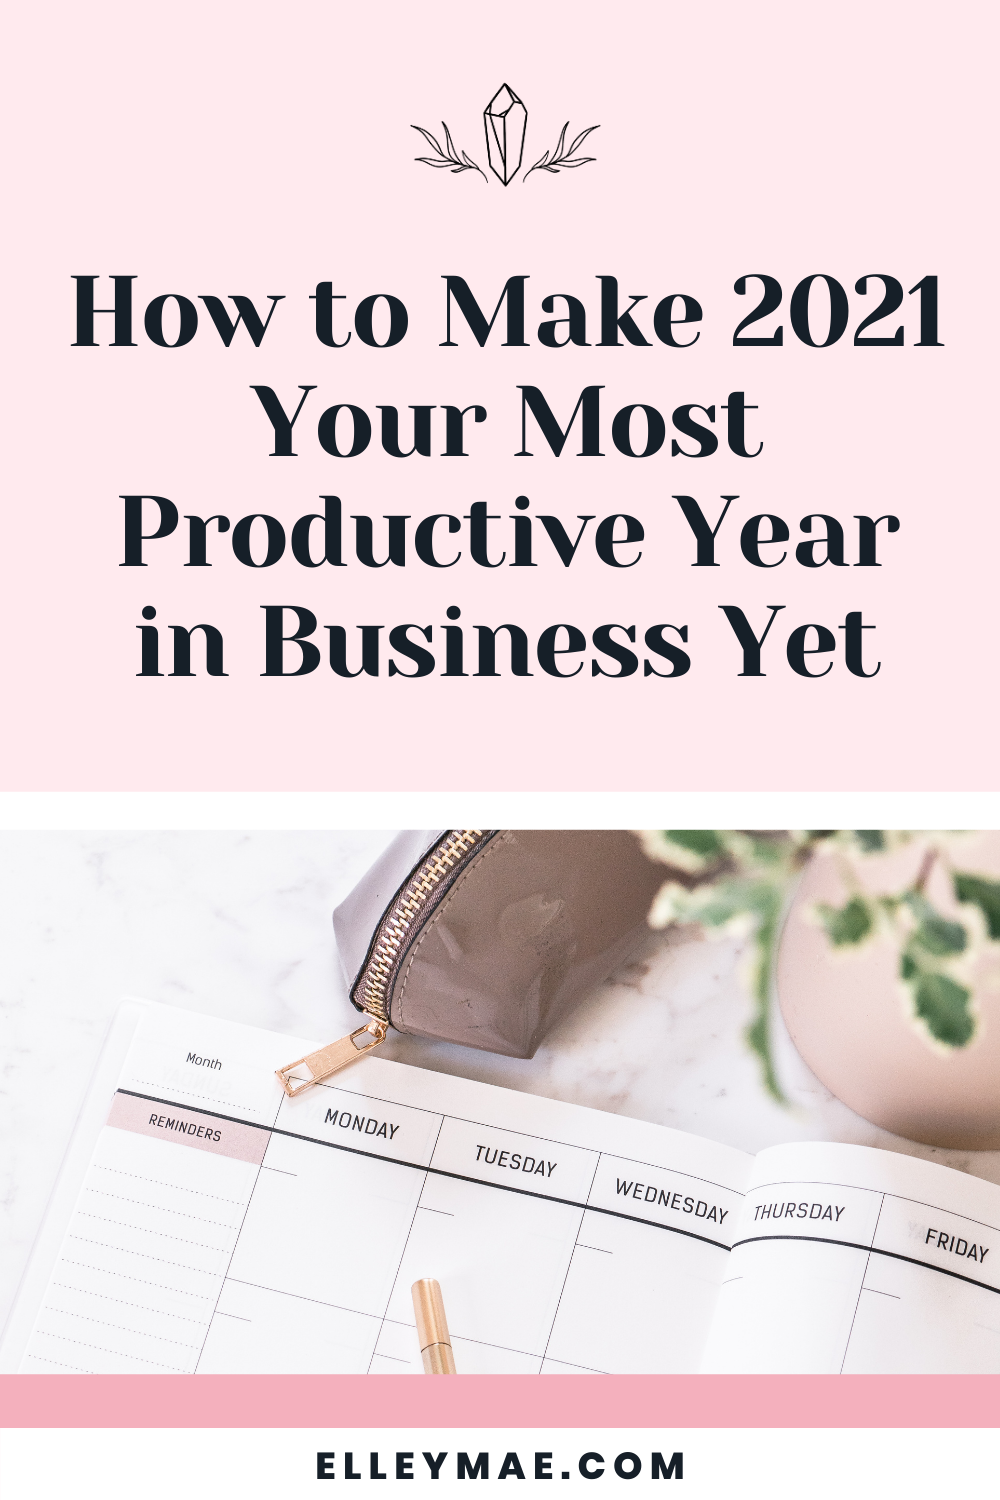 063. How to Make 2021 Your Most Productive Year In Business Yet